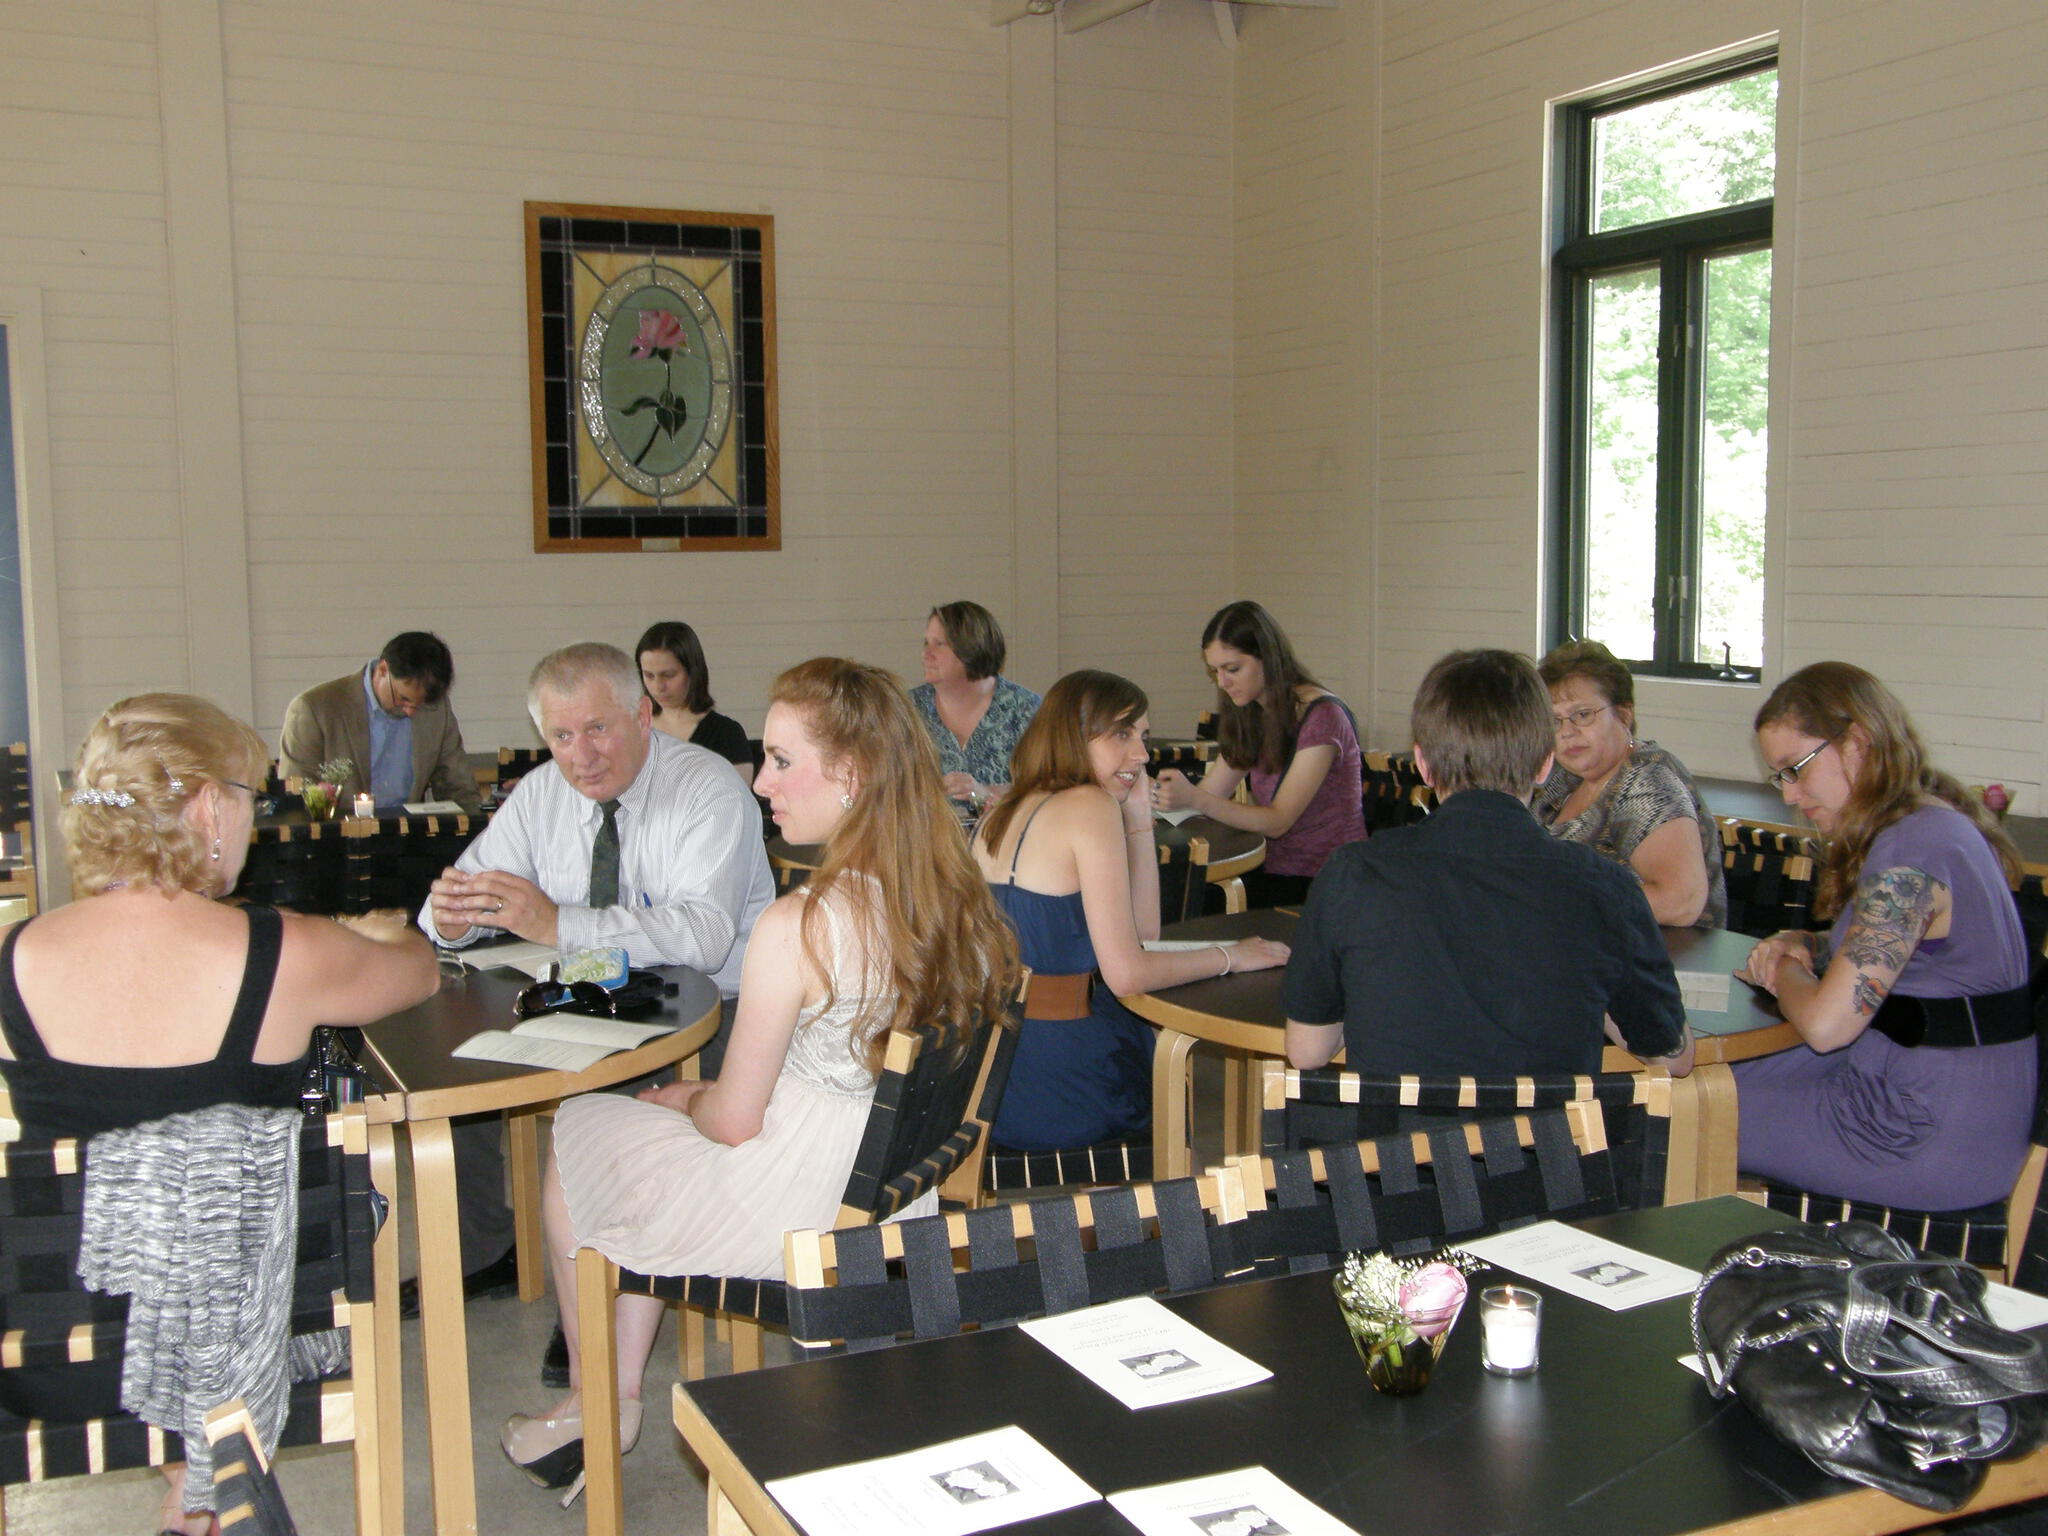 Parents and students enjoying hors d'oeuvres at the wine and cheese reception during the Spring Awards Ceremony, May 2012, at Ritter Park.